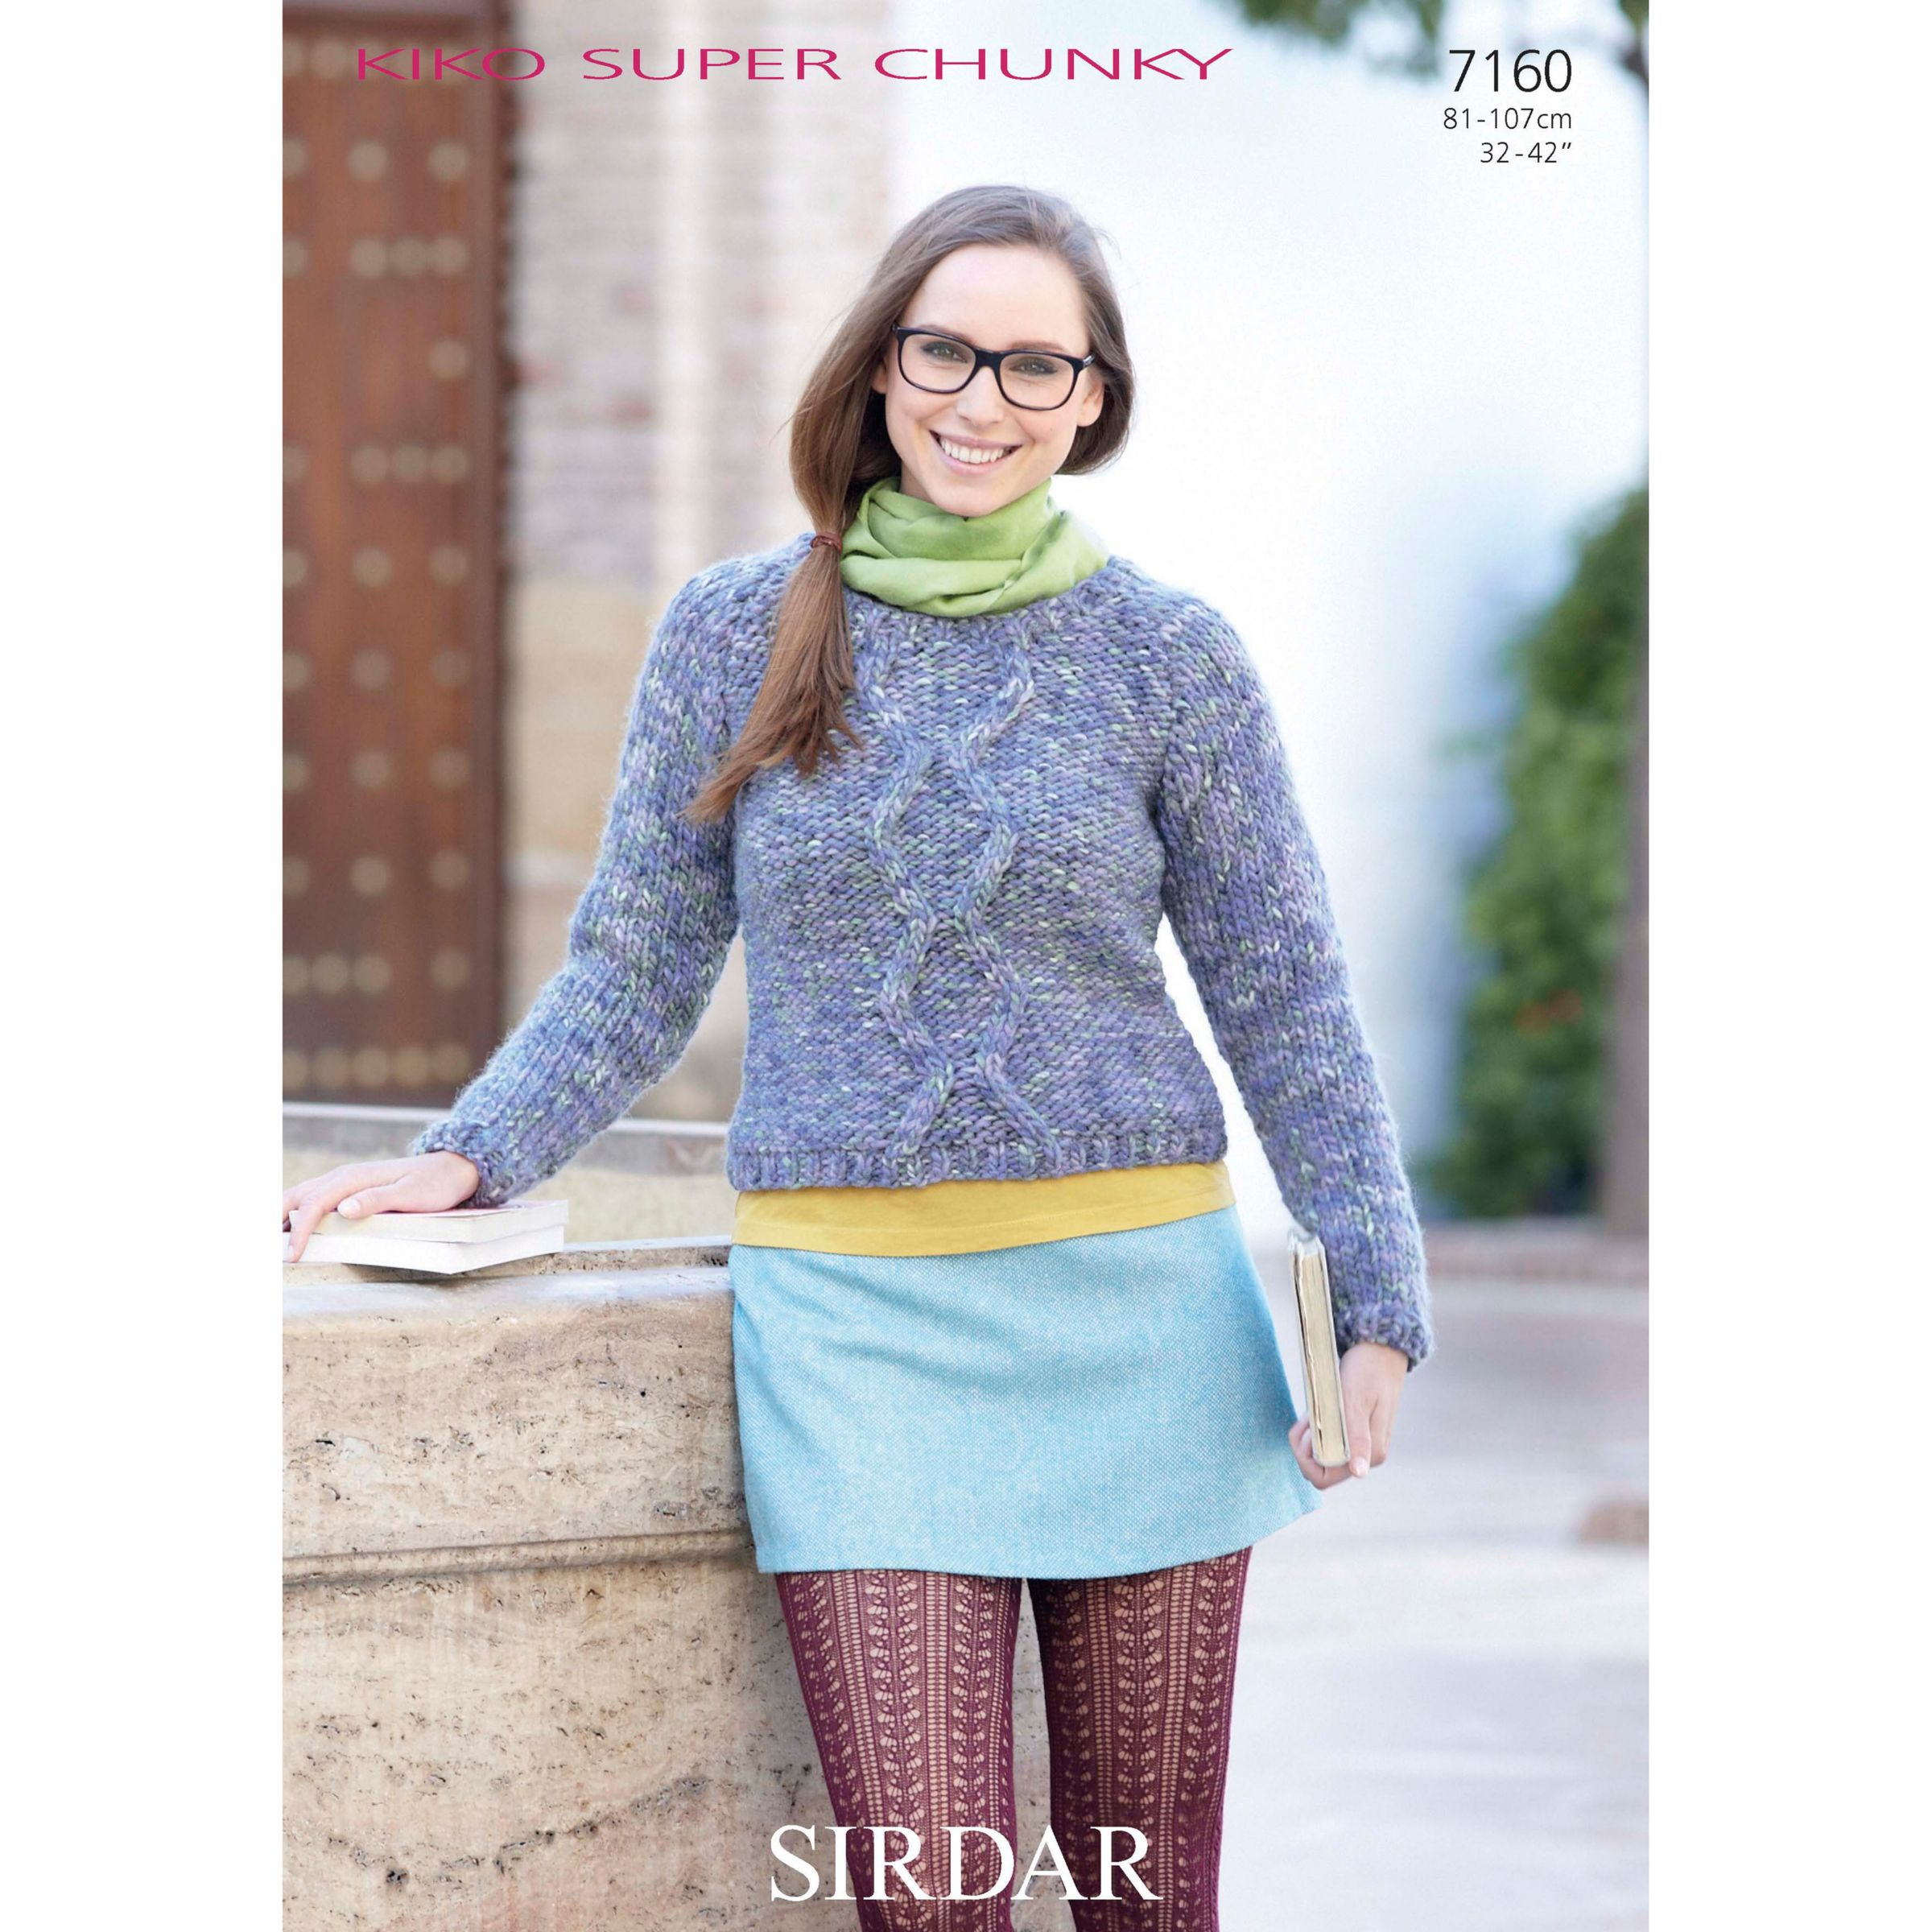 Super Chunky Jumper Knitting Pattern : Buy Sirdar Super Chunky Womens Jumper Knitting Pattern, 7160 John Lewis